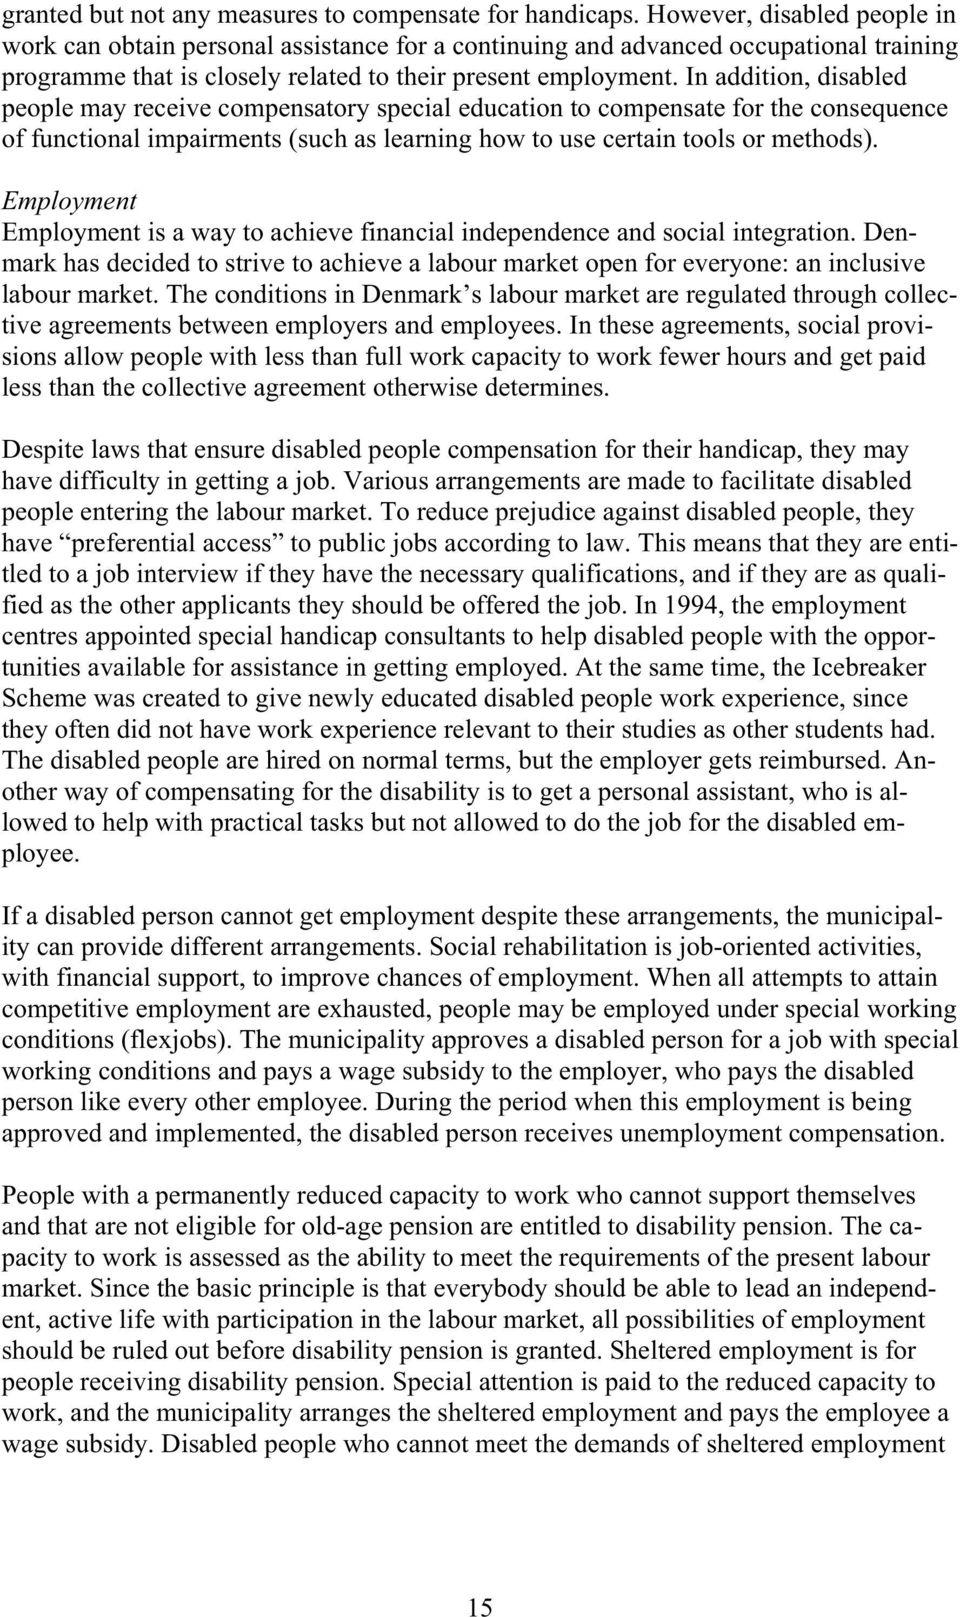 In addition, disabled people may receive compensatory special education to compensate for the consequence of functional impairments (such as learning how to use certain tools or methods).